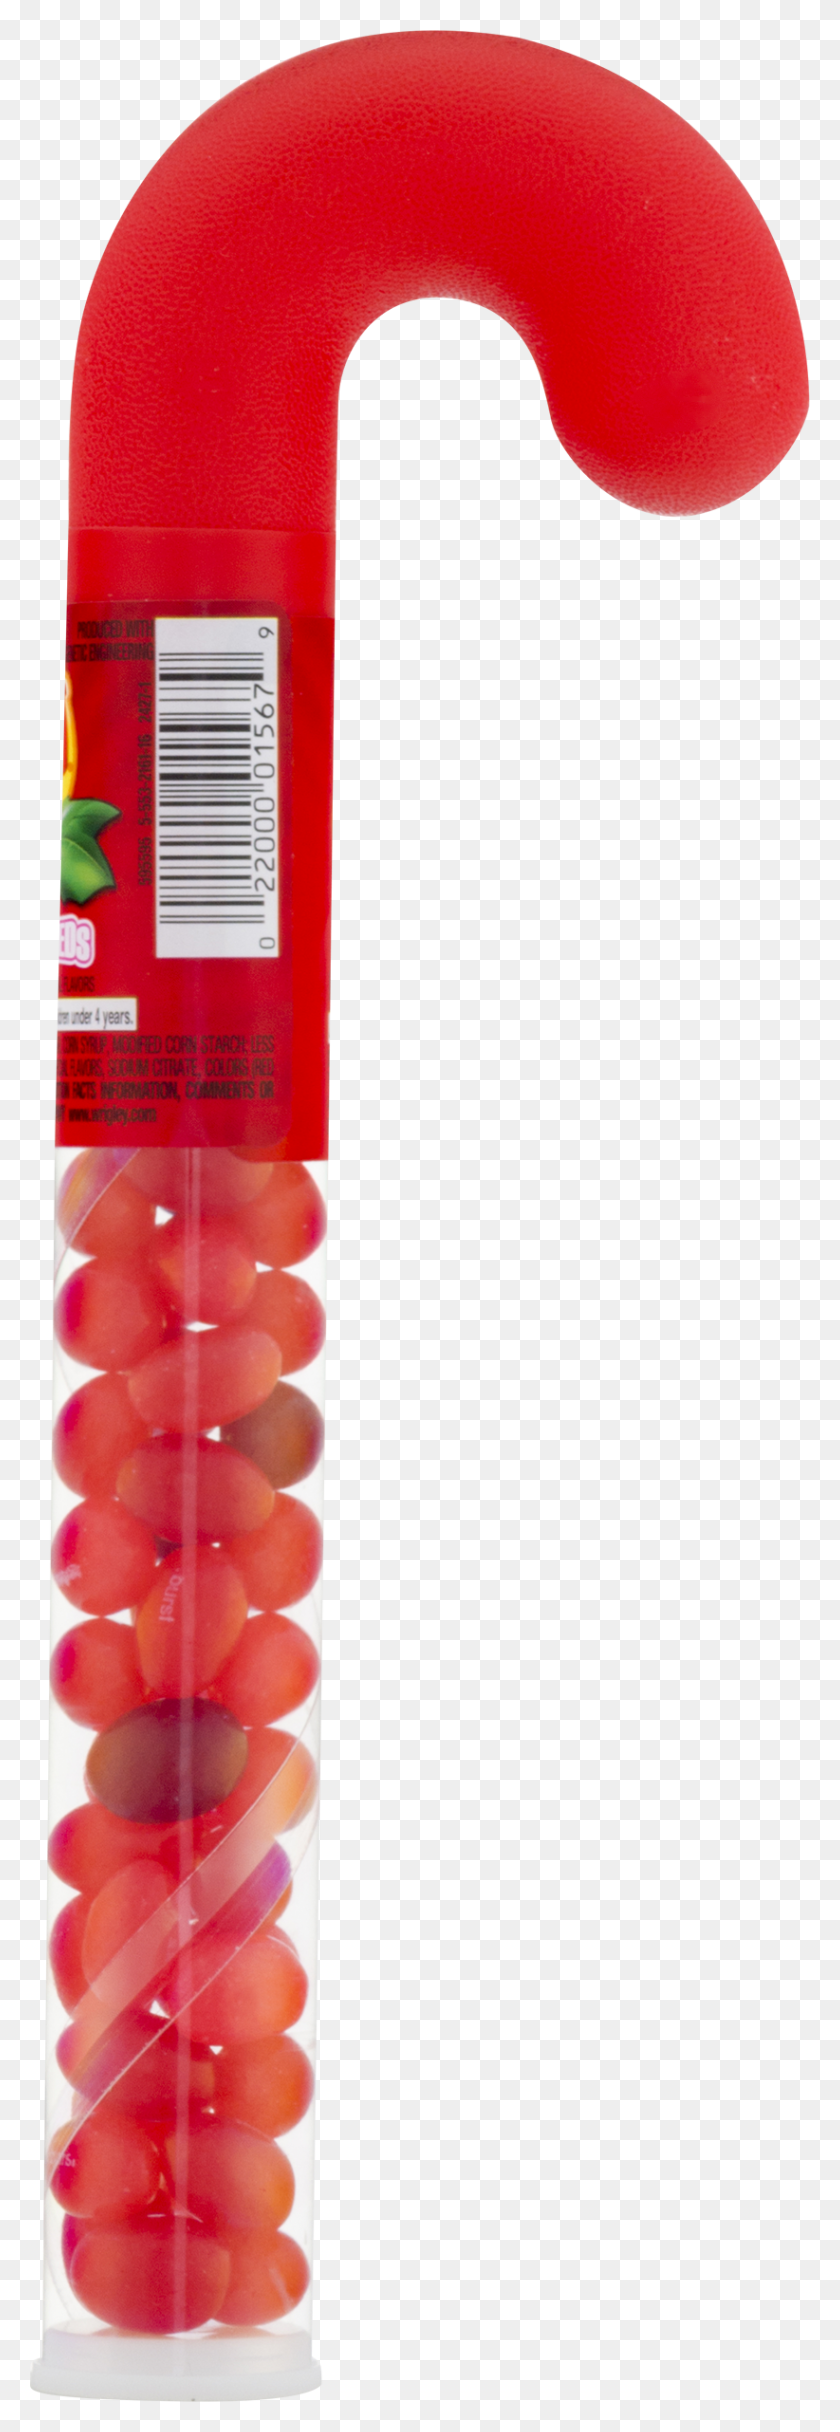 Starburst, Holiday Jelly Bean Christmas Candy Cane, Oz - Starburst Candy PNG